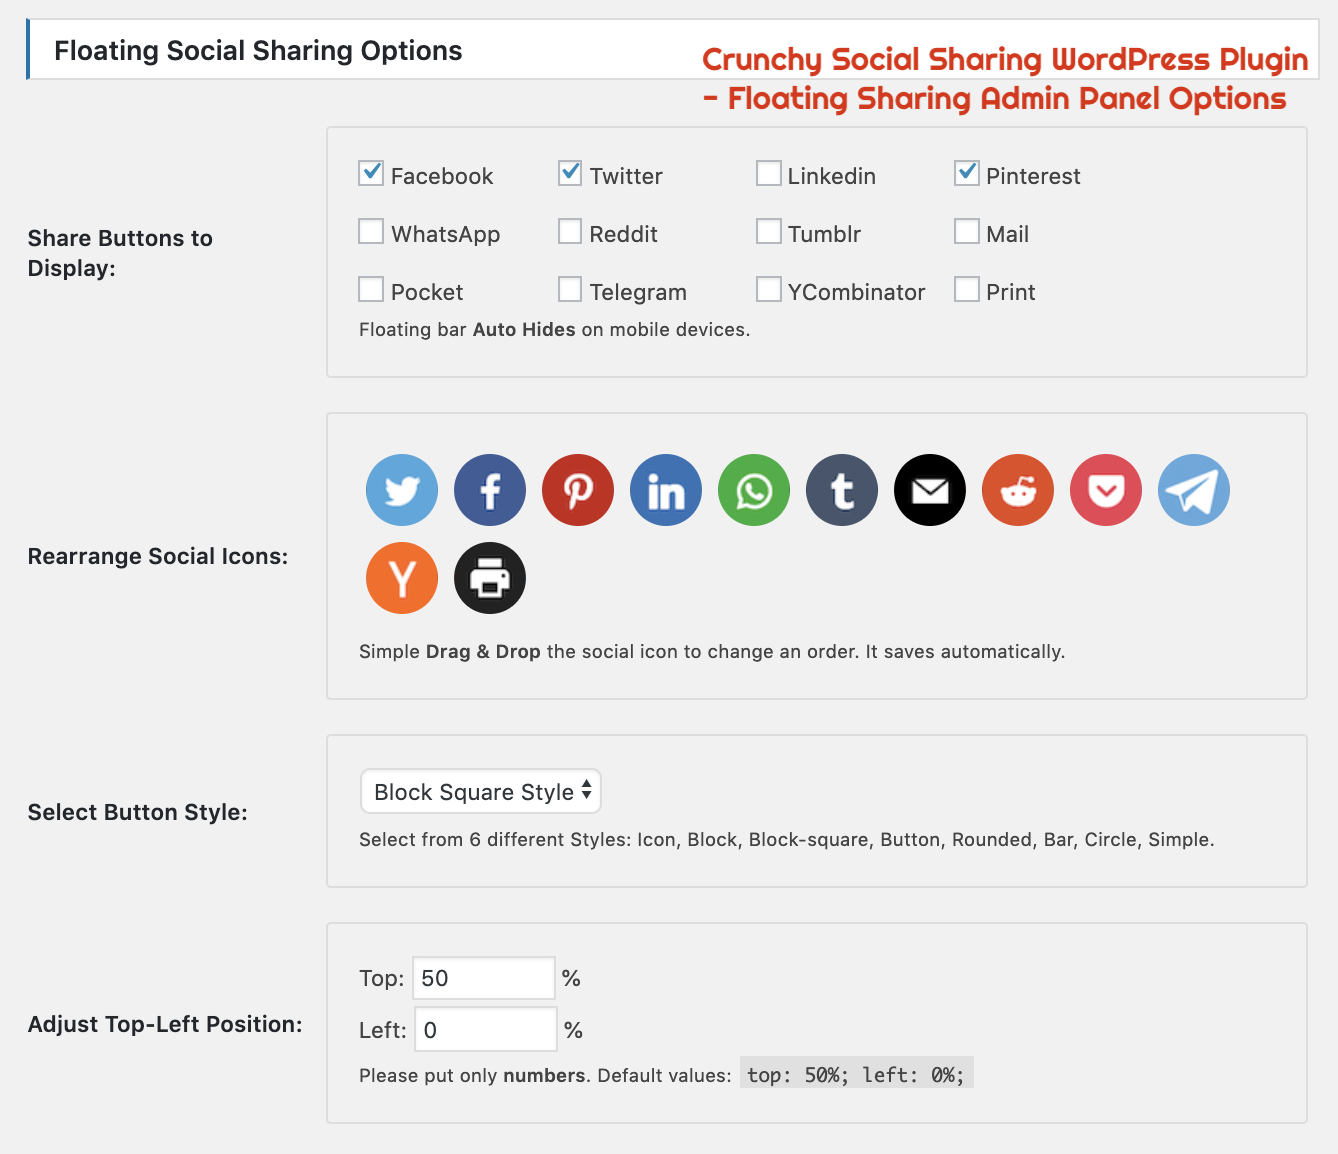 Crunchy Sharing WordPress Plugin - Floating Sharing Admin Panel Options.png